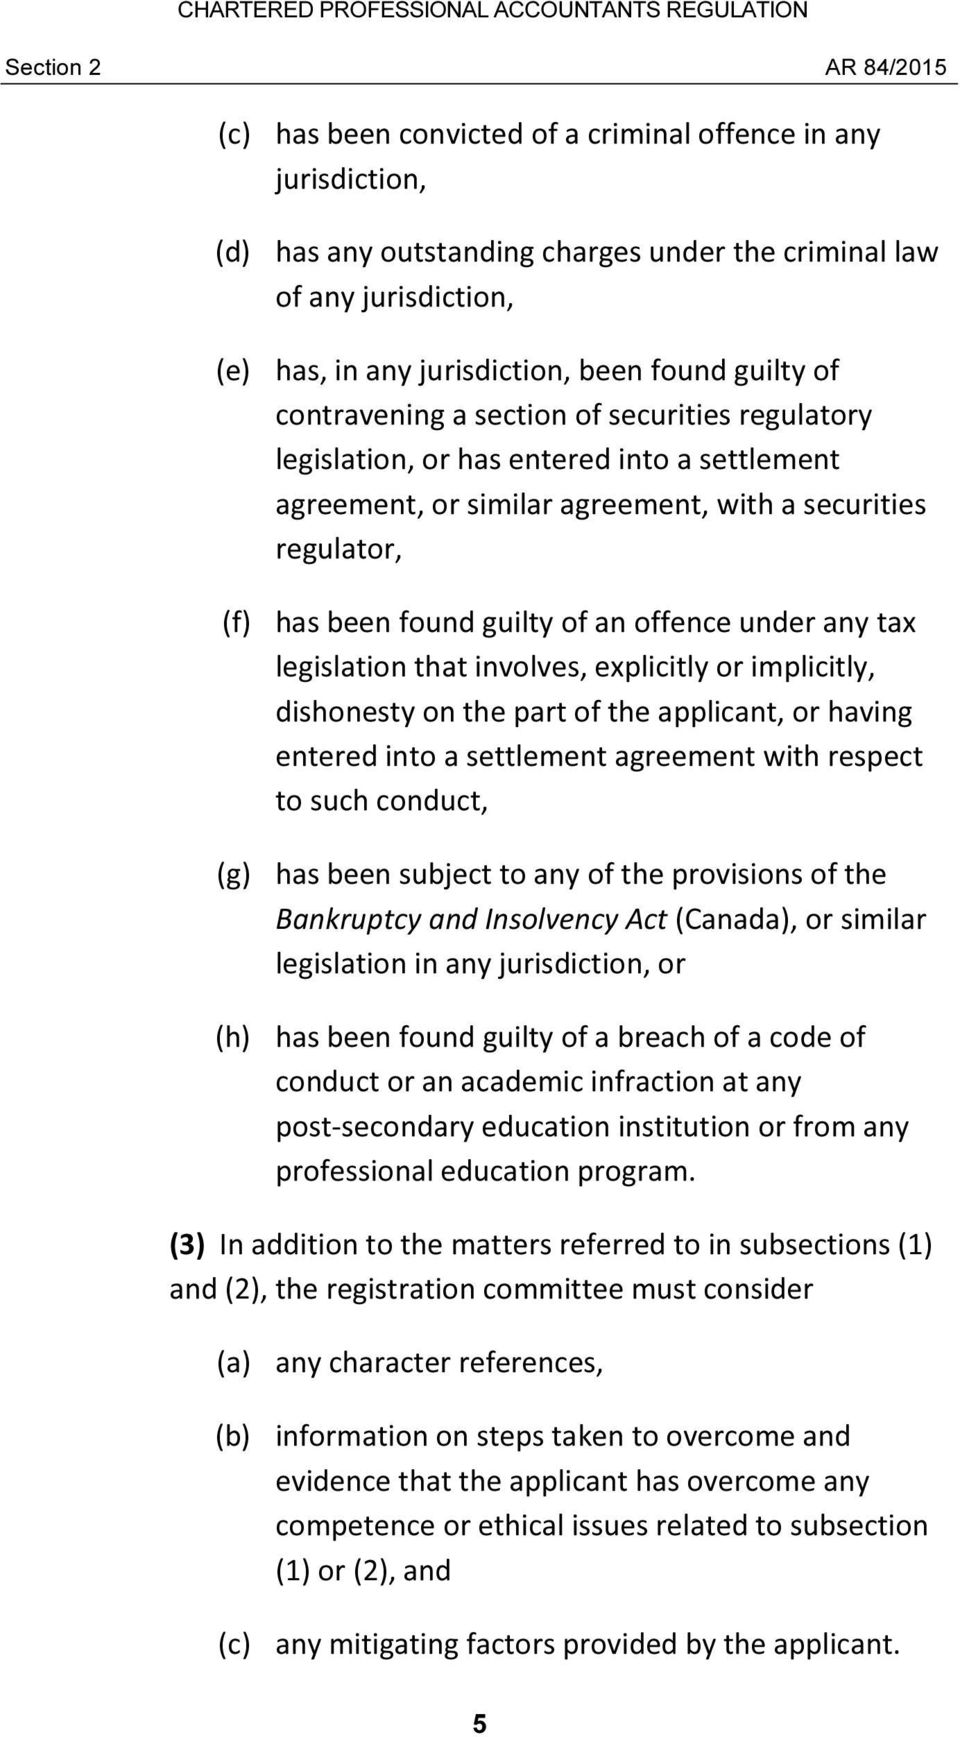 of an offence under any tax legislation that involves, explicitly or implicitly, dishonesty on the part of the applicant, or having entered into a settlement agreement with respect to such conduct,